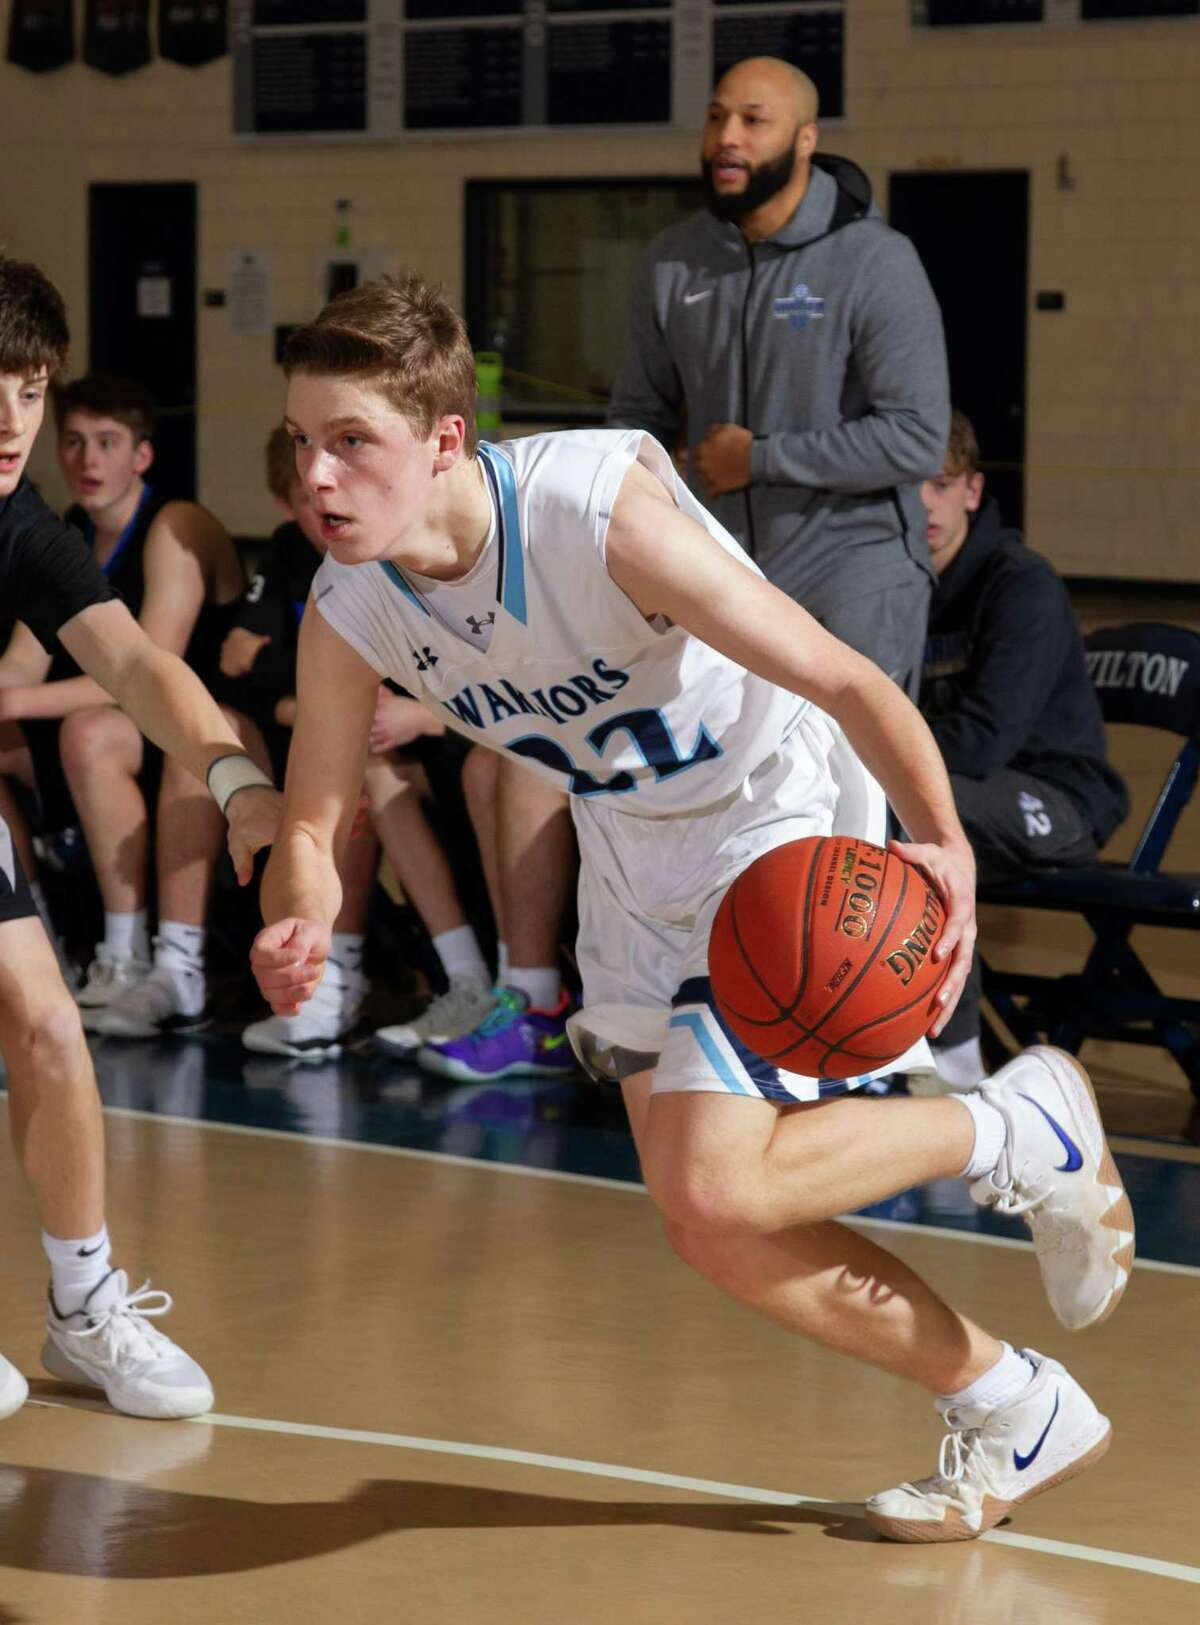 Andrew Smith (file photo) scored 18 points in Wilton's season-ending loss to New Britain on Monday night in the Division I state tournament.